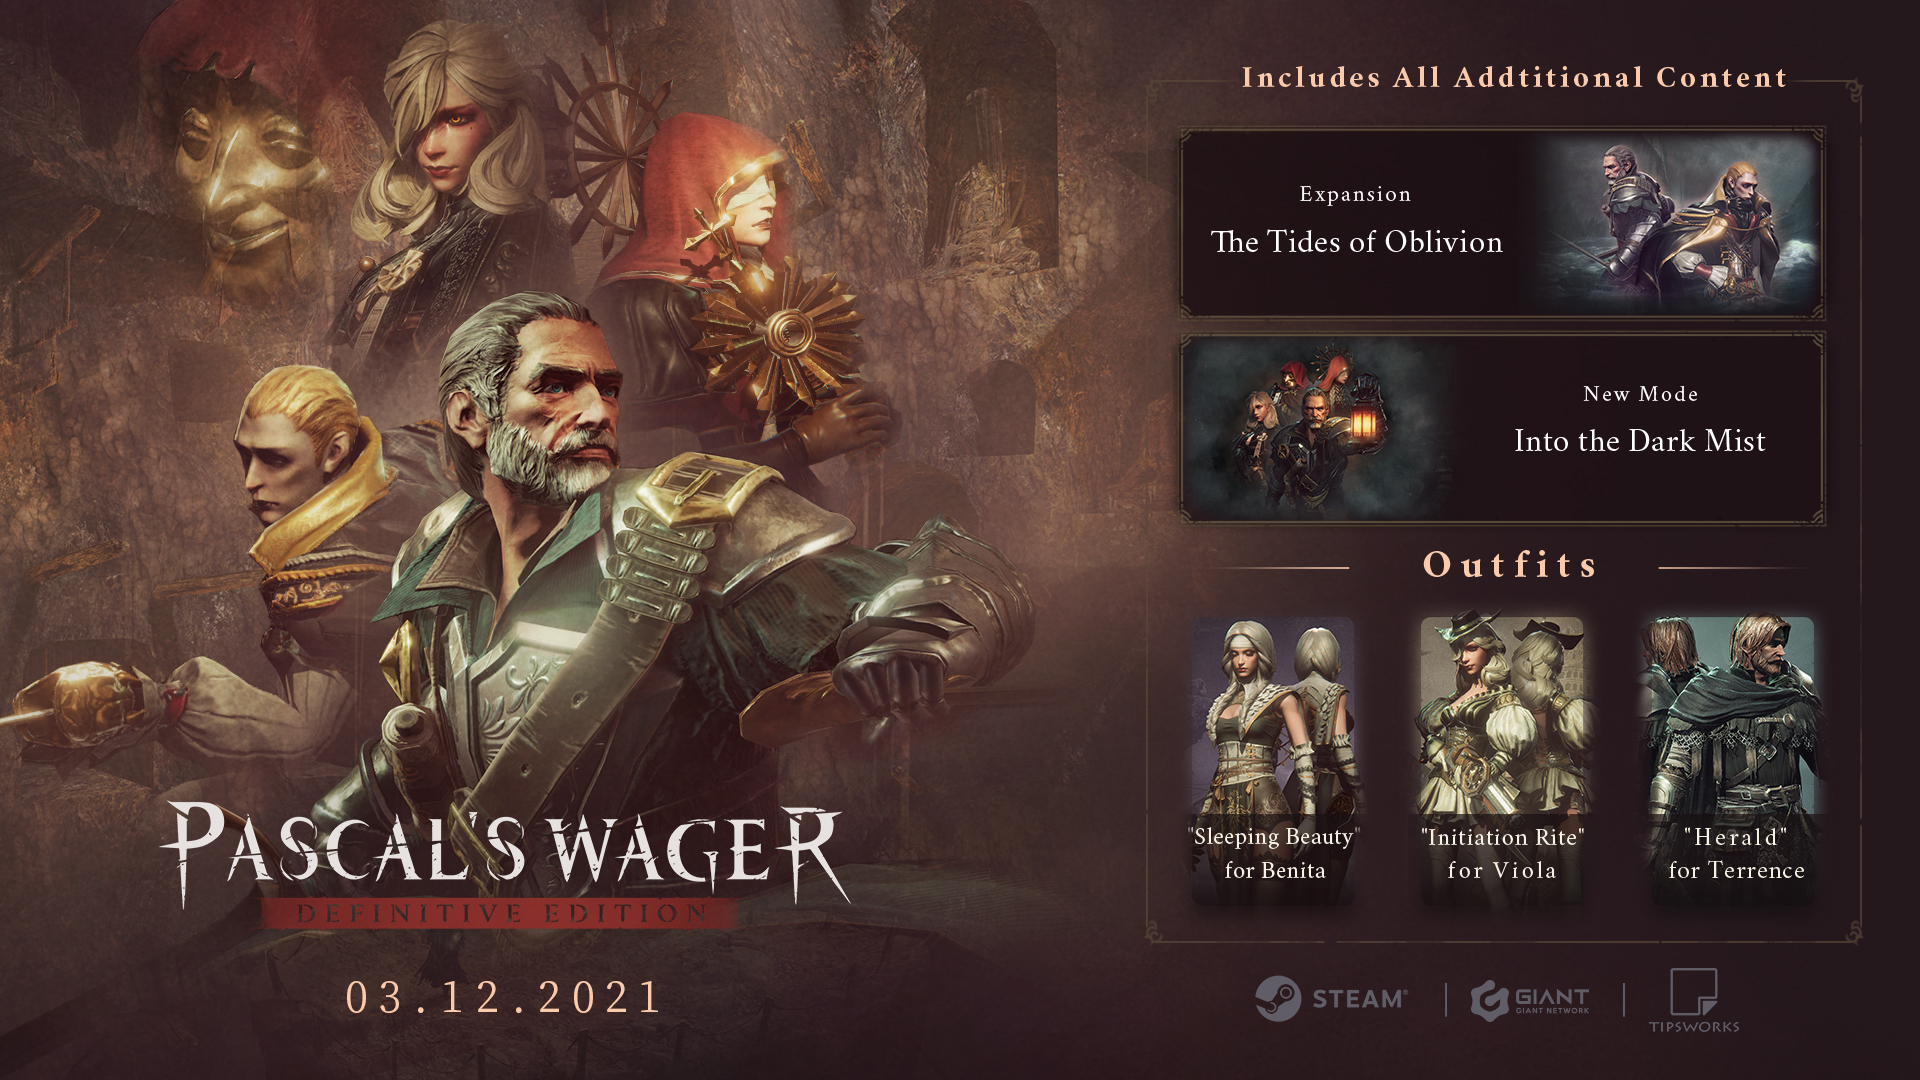 Pascal's Wager Definitive Edition Promo Image